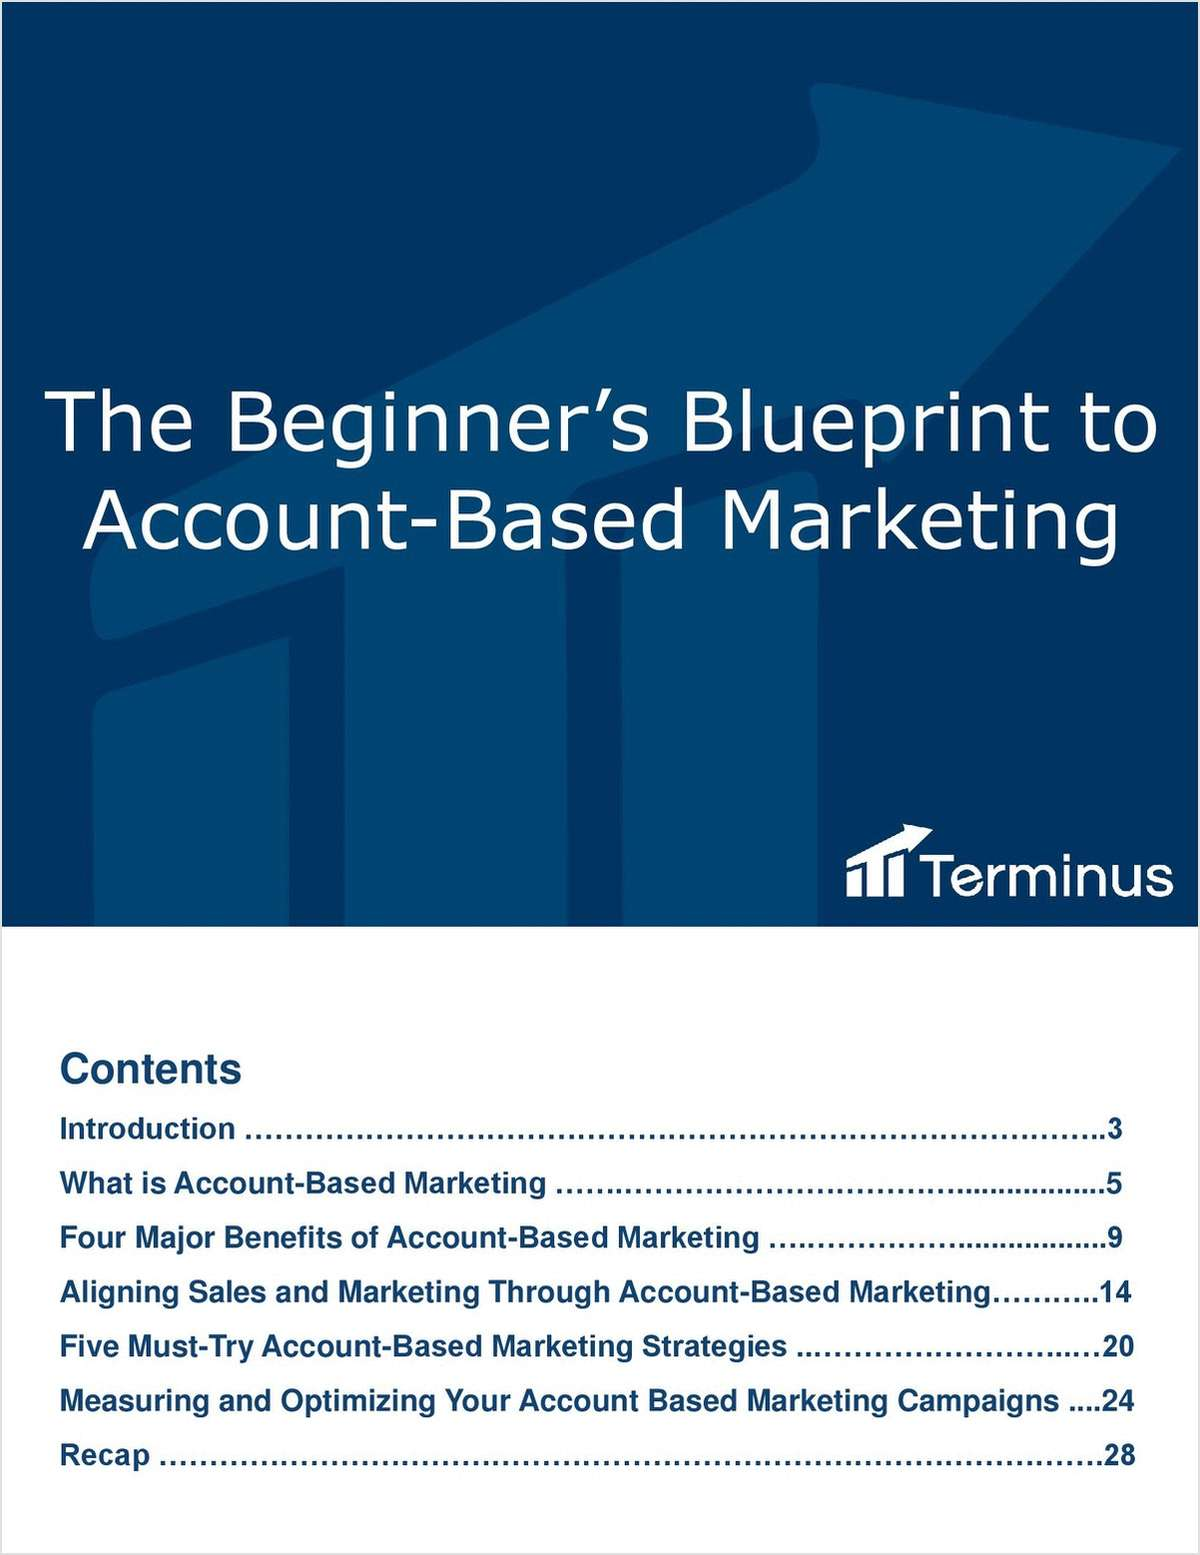 The beginners blueprint to account based marketing free terminus the beginners blueprint to account based marketing free terminus ebook malvernweather Images